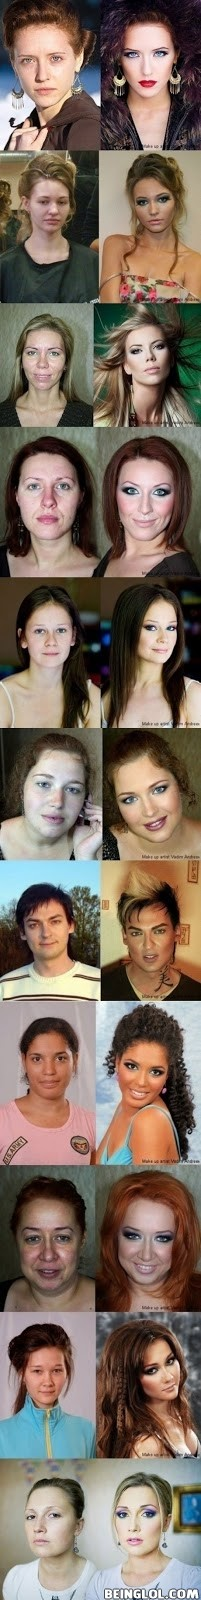 The Mother of Makeup !